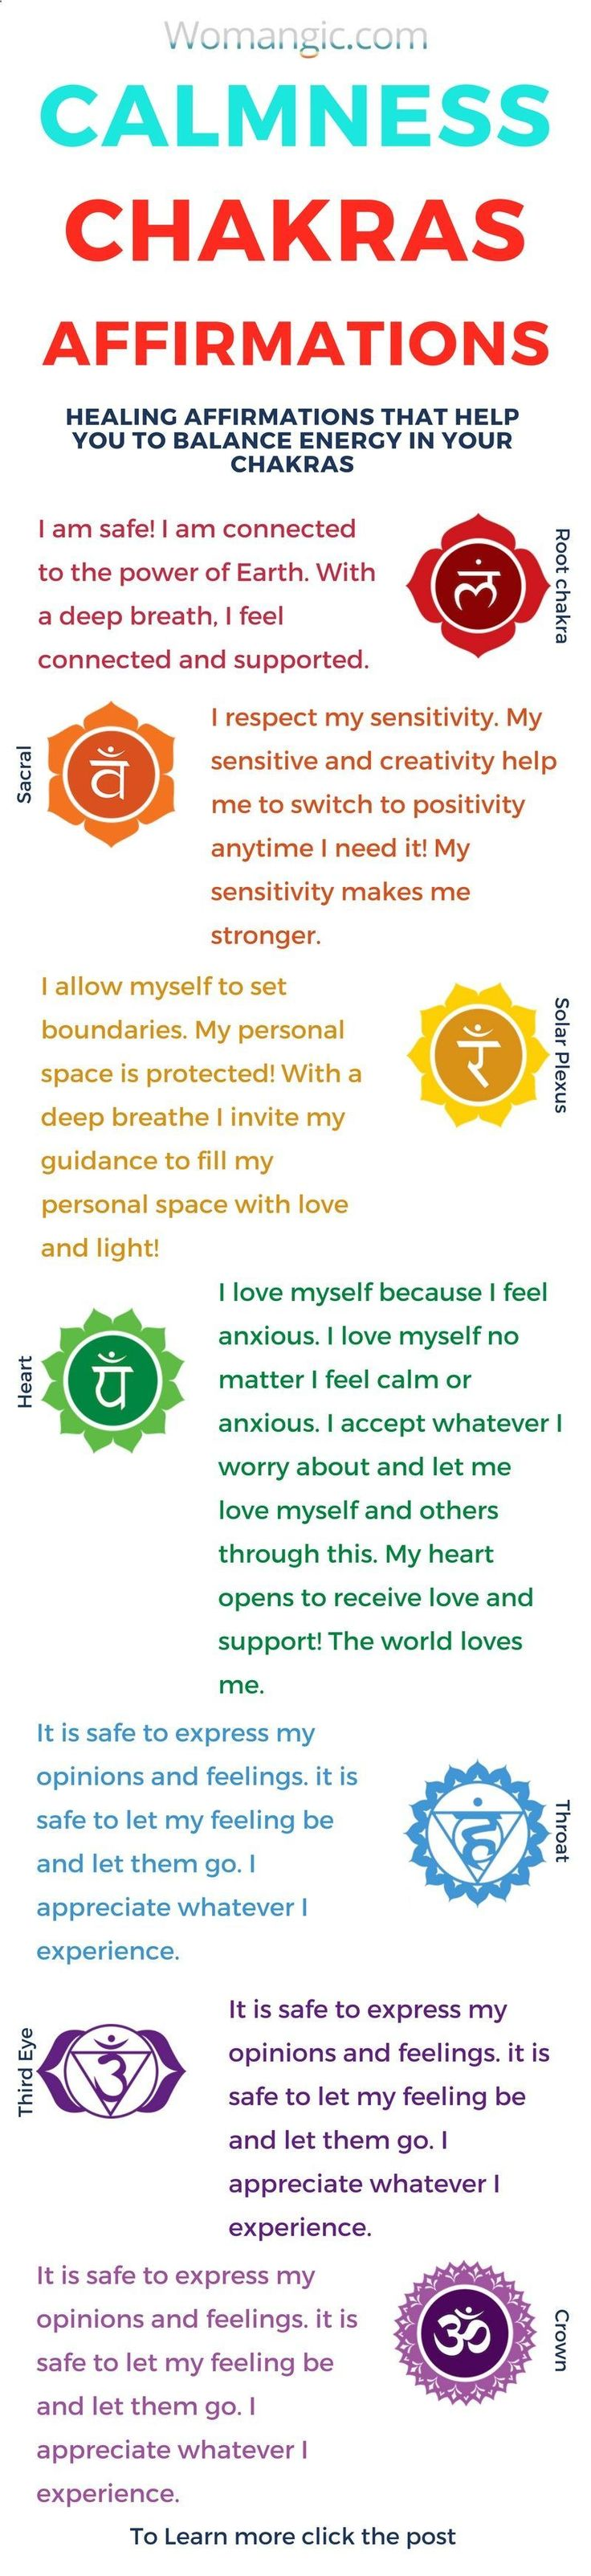 Best 25 reiki symbols meaning ideas on pinterest reiki reiki reiki symbols affirmations to feel calmer how to work with your chakras with affirmations chakra chakra balancing root sacral solar plexus heart biocorpaavc